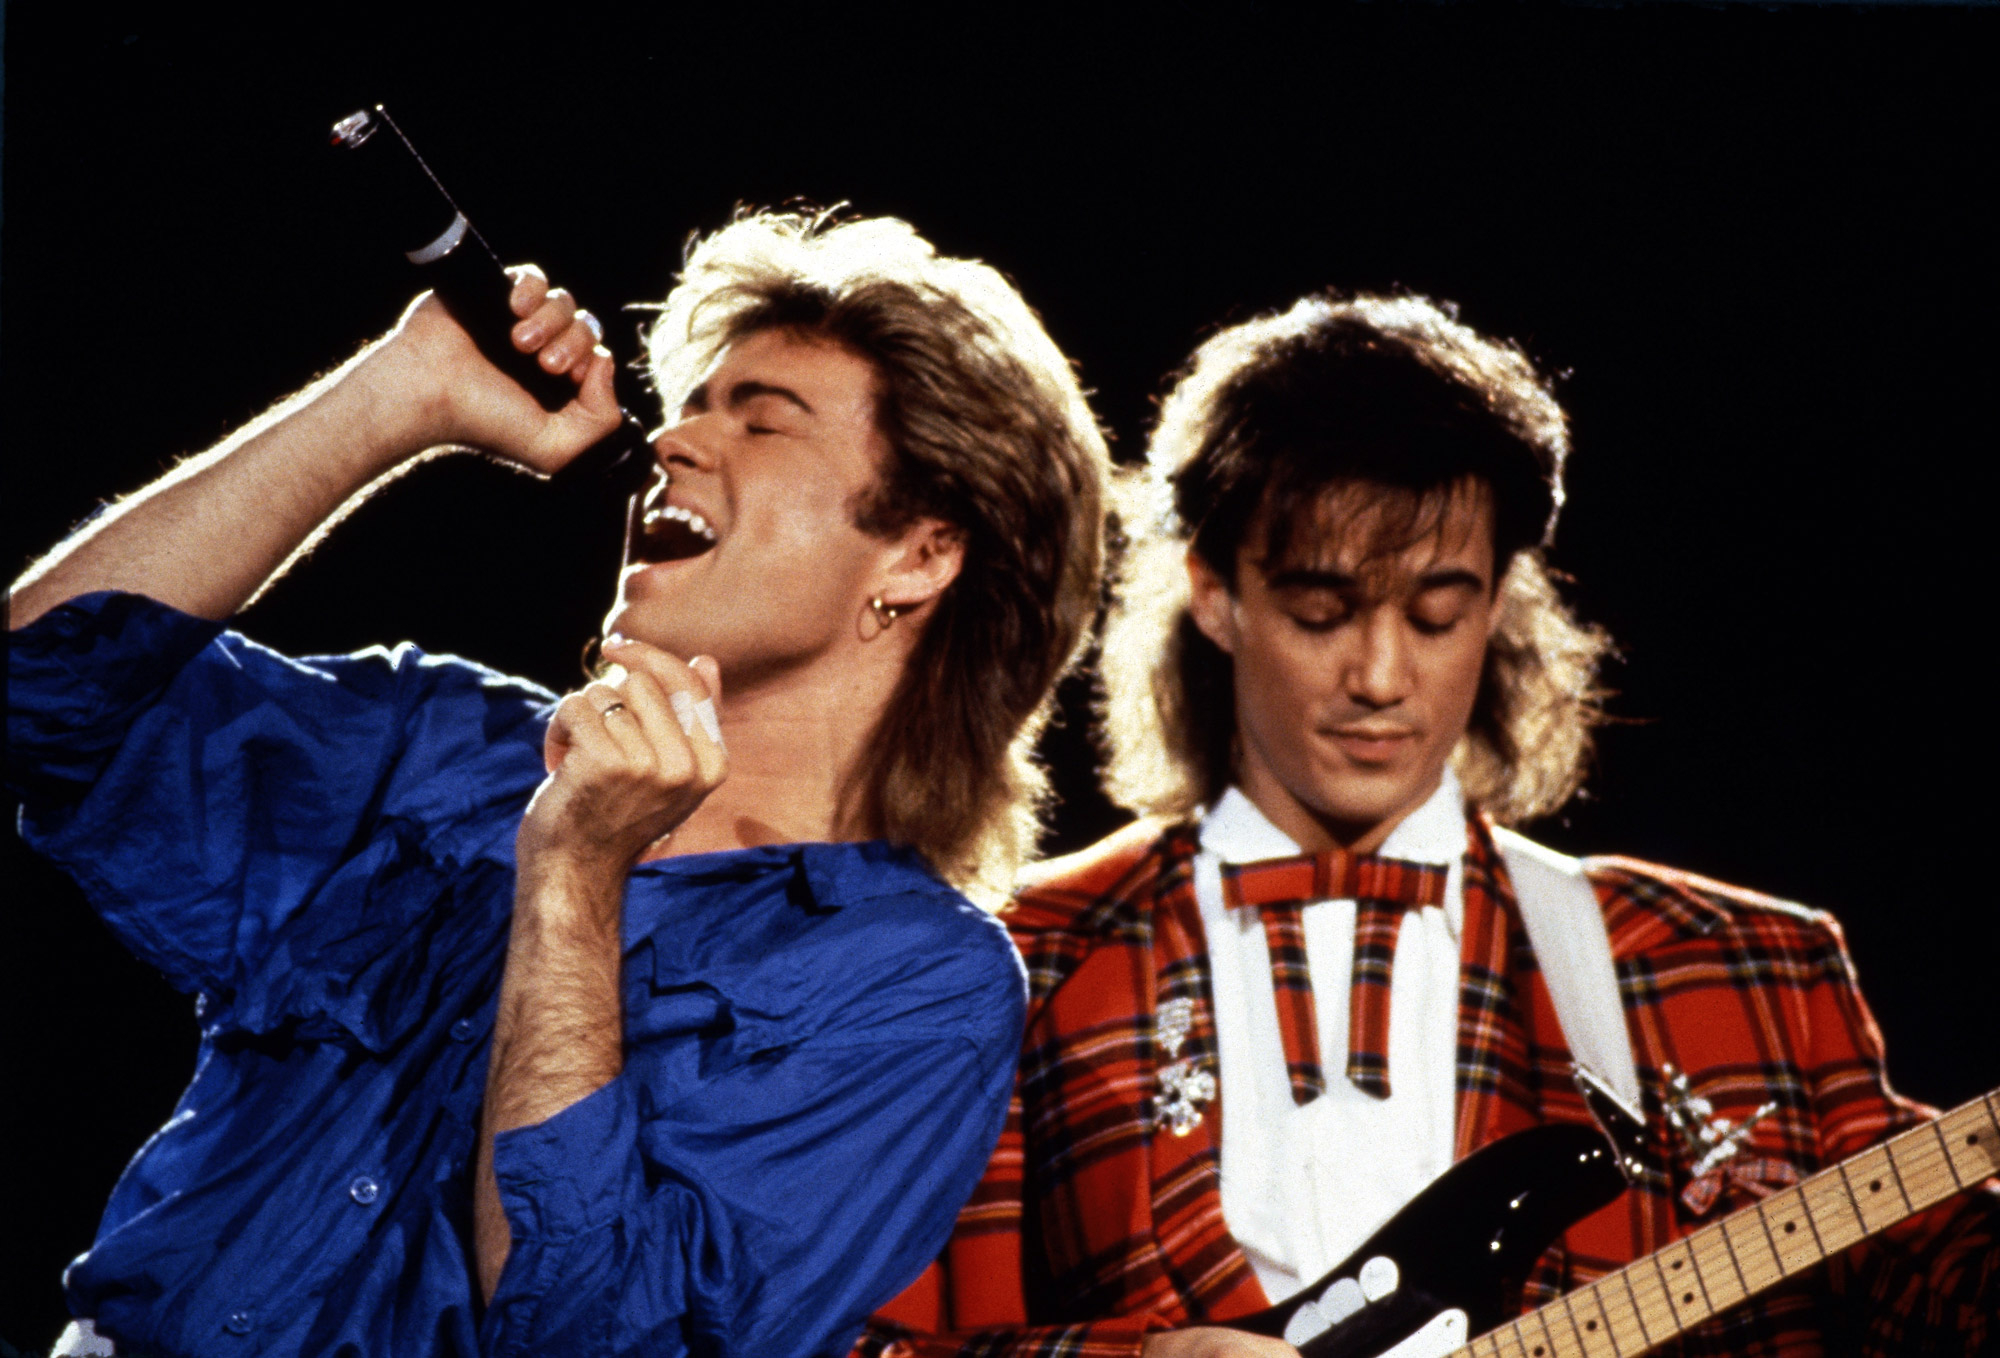 George Michael Wham Last Christmas song